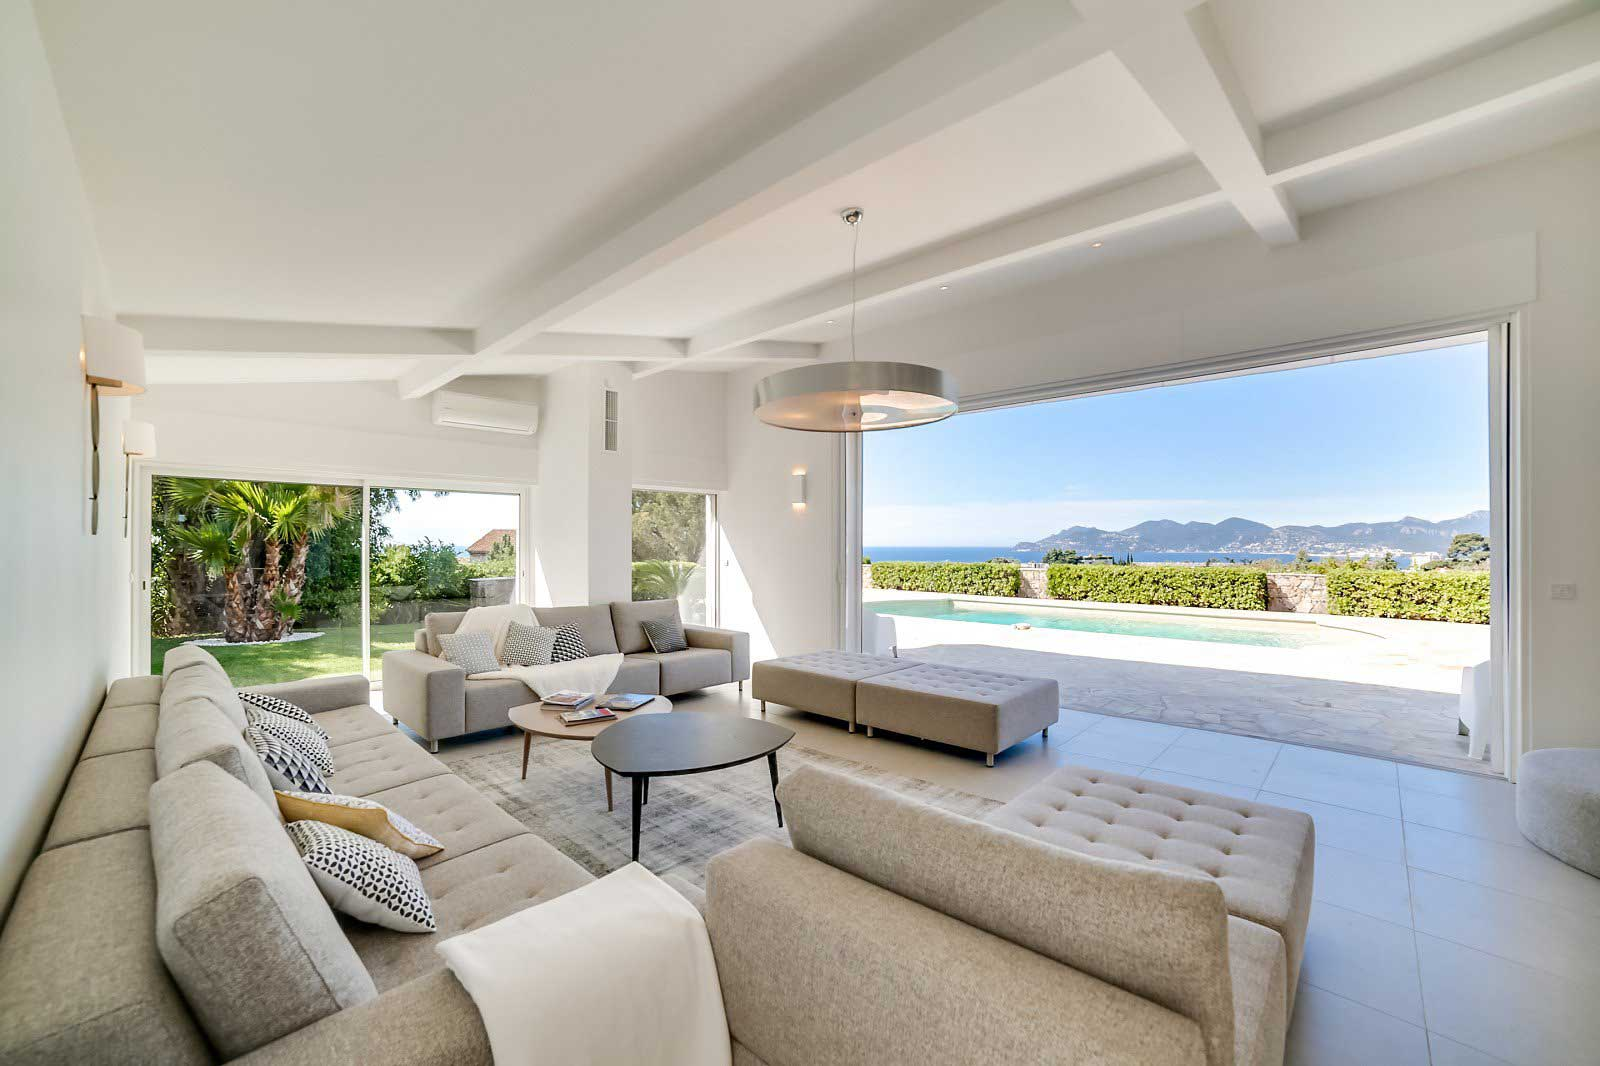 Cannes - France - House , 7 rooms, 6 bedrooms - Slideshow Picture 1